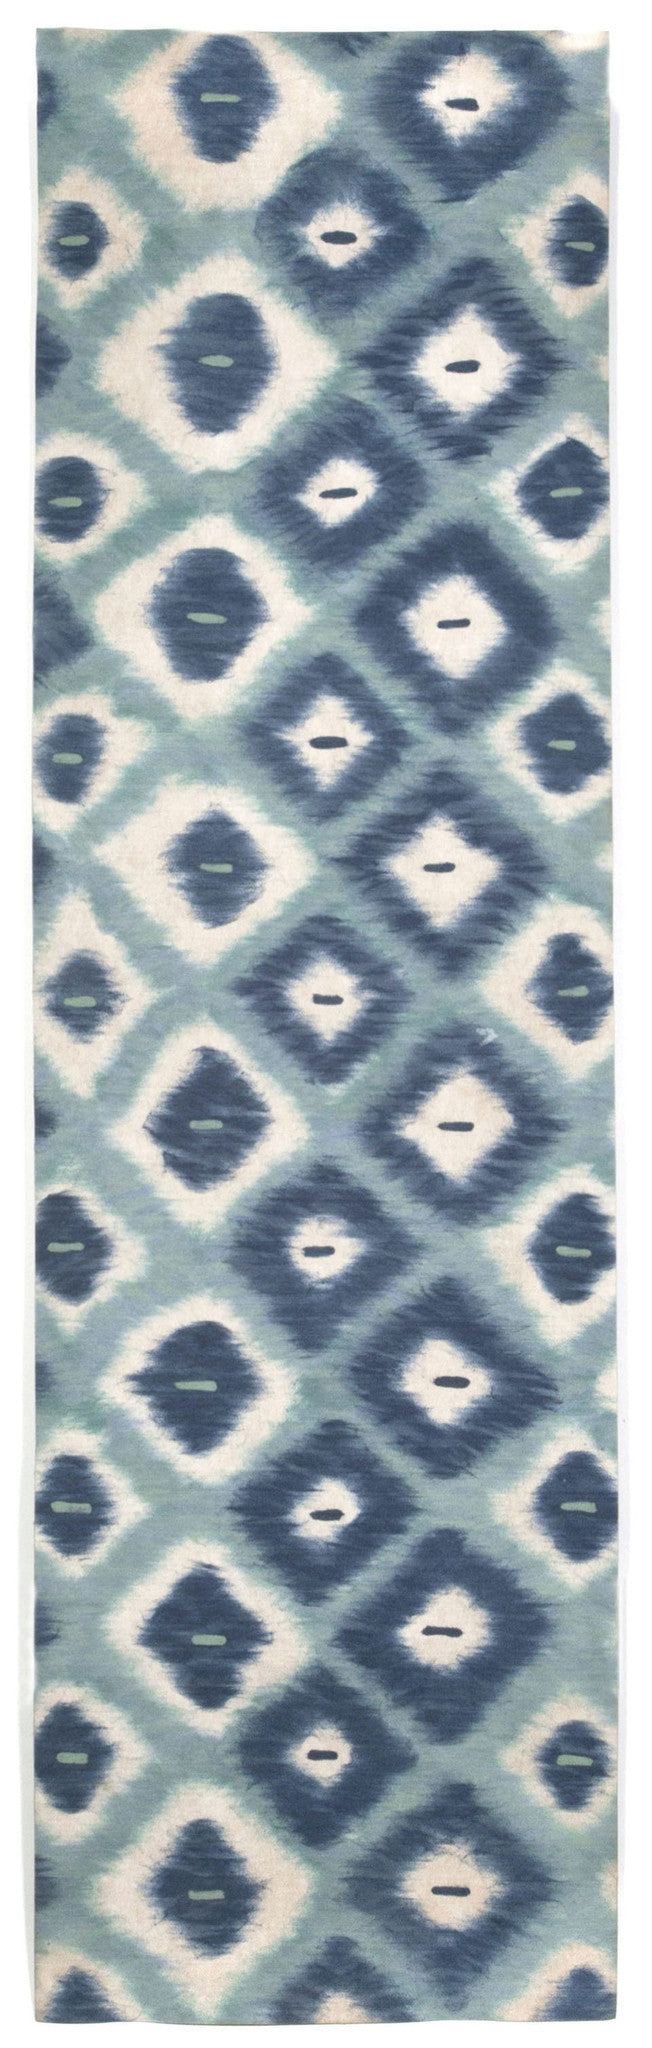 "Ikat Diamonds Aqua 27"" x 8' Indoor/Outdoor Flatweave Rug"